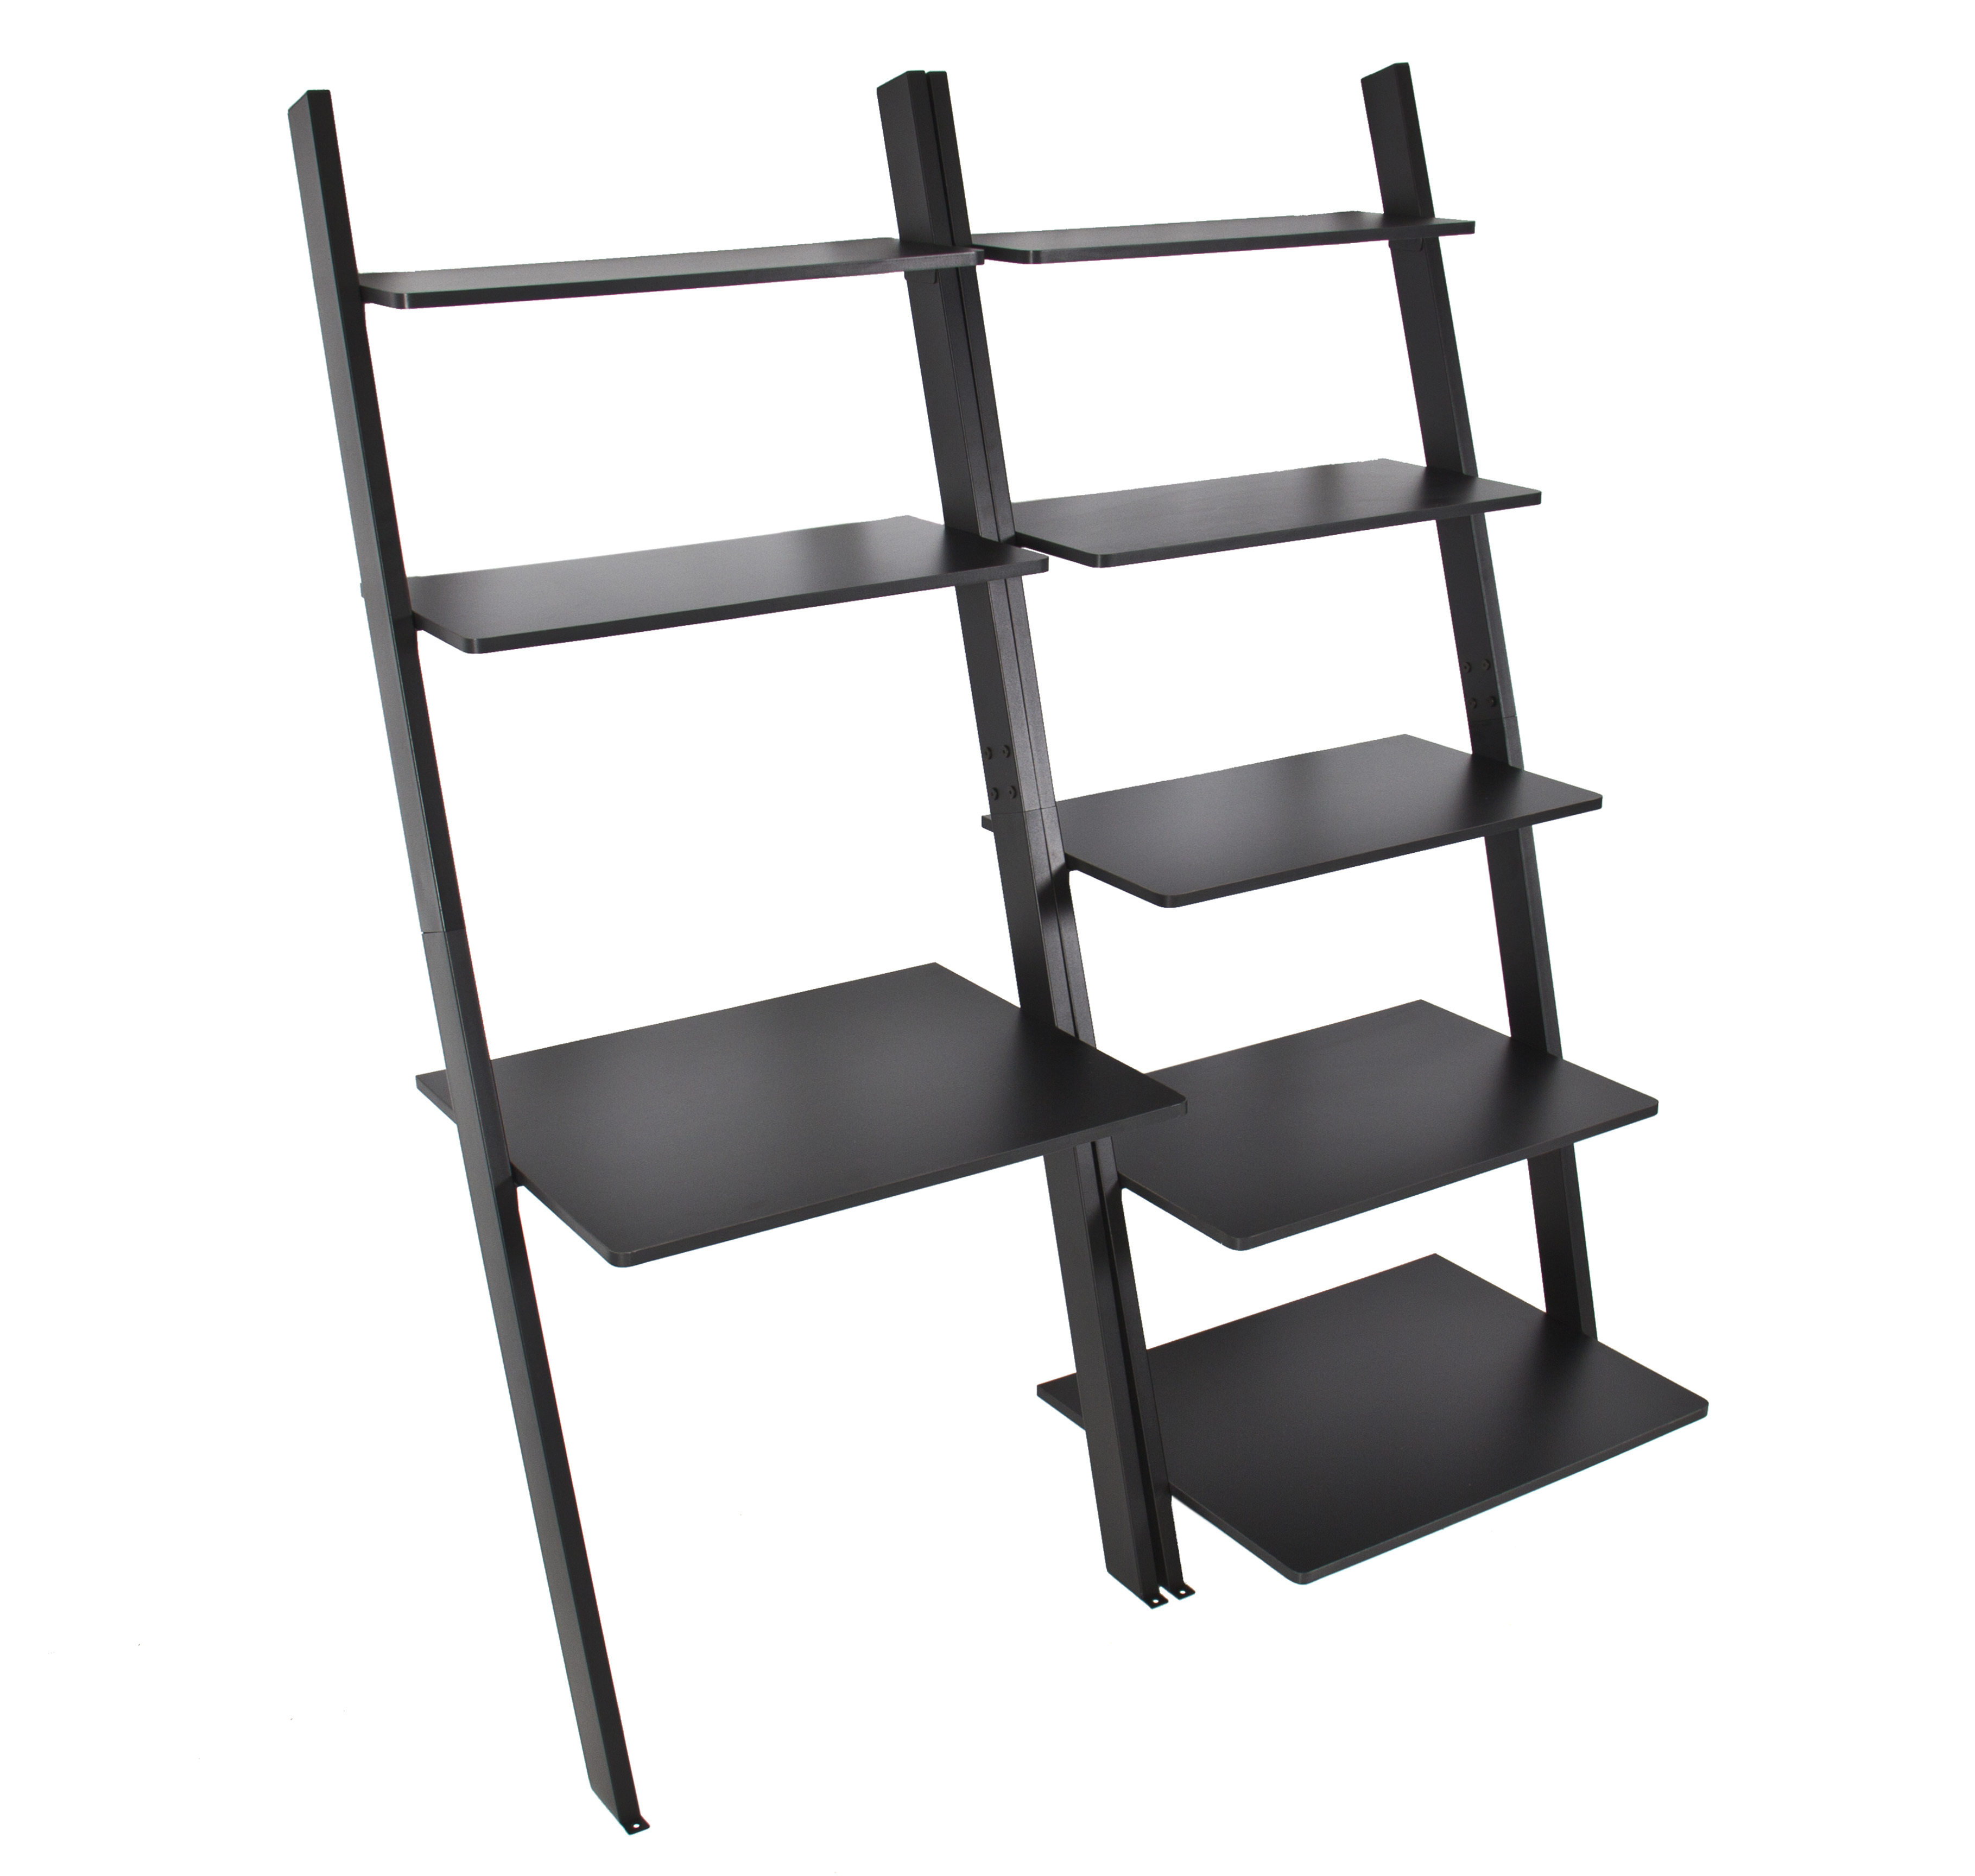 Best Choice Products 7 Shelf Leaning Bookcase And Computer Desk For Home And Ofice Furniture Black Walmart Com